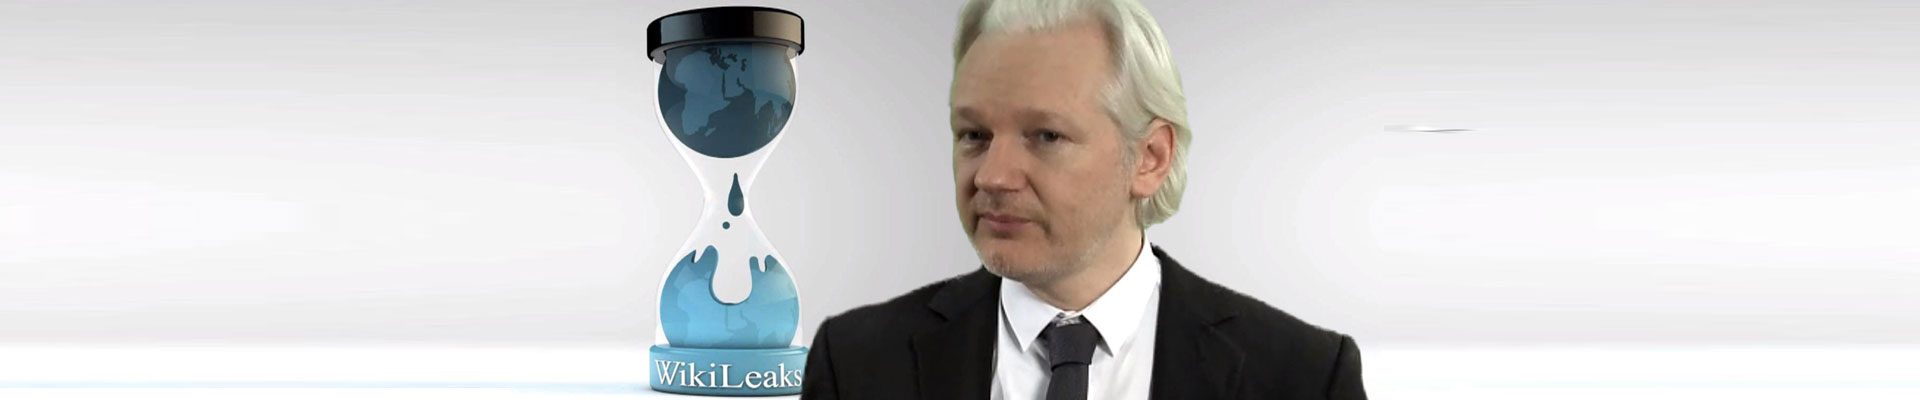 Julian Assange EXPOSES HILLARY's BULLSH*T! HACKERS AREN'T RUSSIAN, THEY ARE DEMOCRAT WHISTLEBLOWERS & YOU'RE HAVING THEM KILLED!